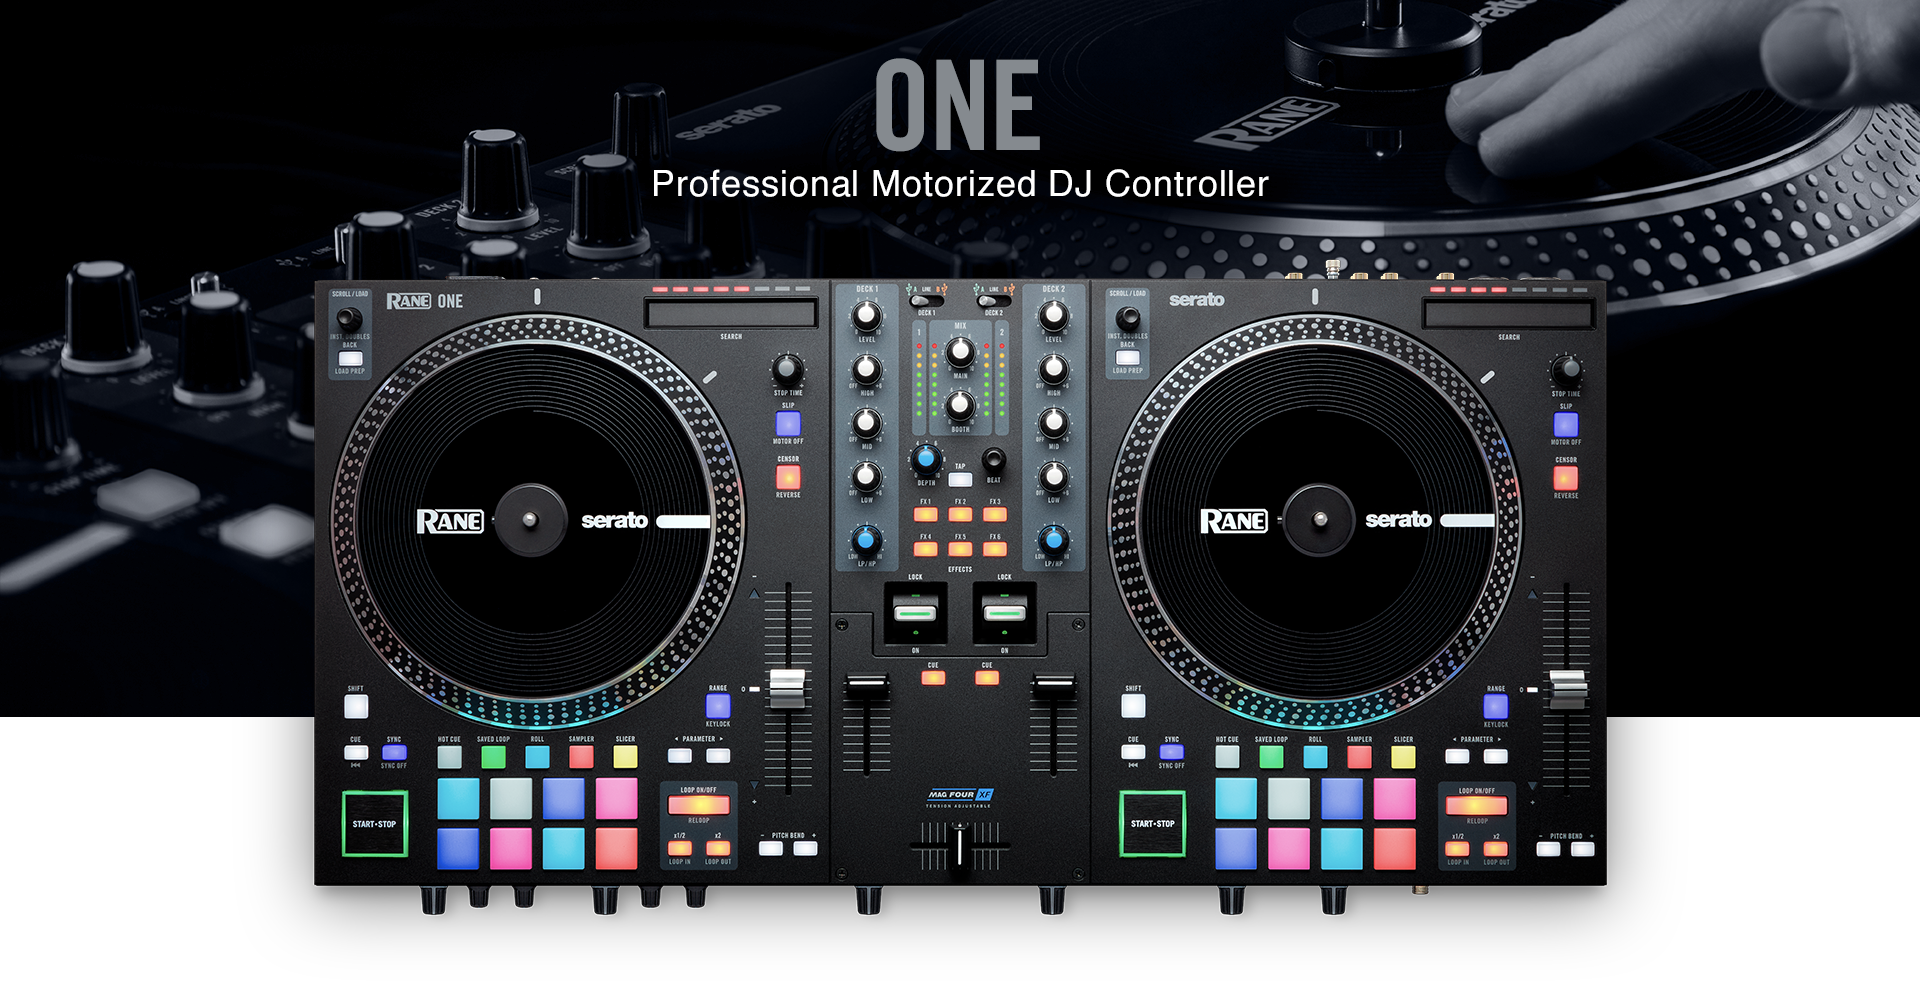 RANE ONE – Professional Motorized DJ Controller